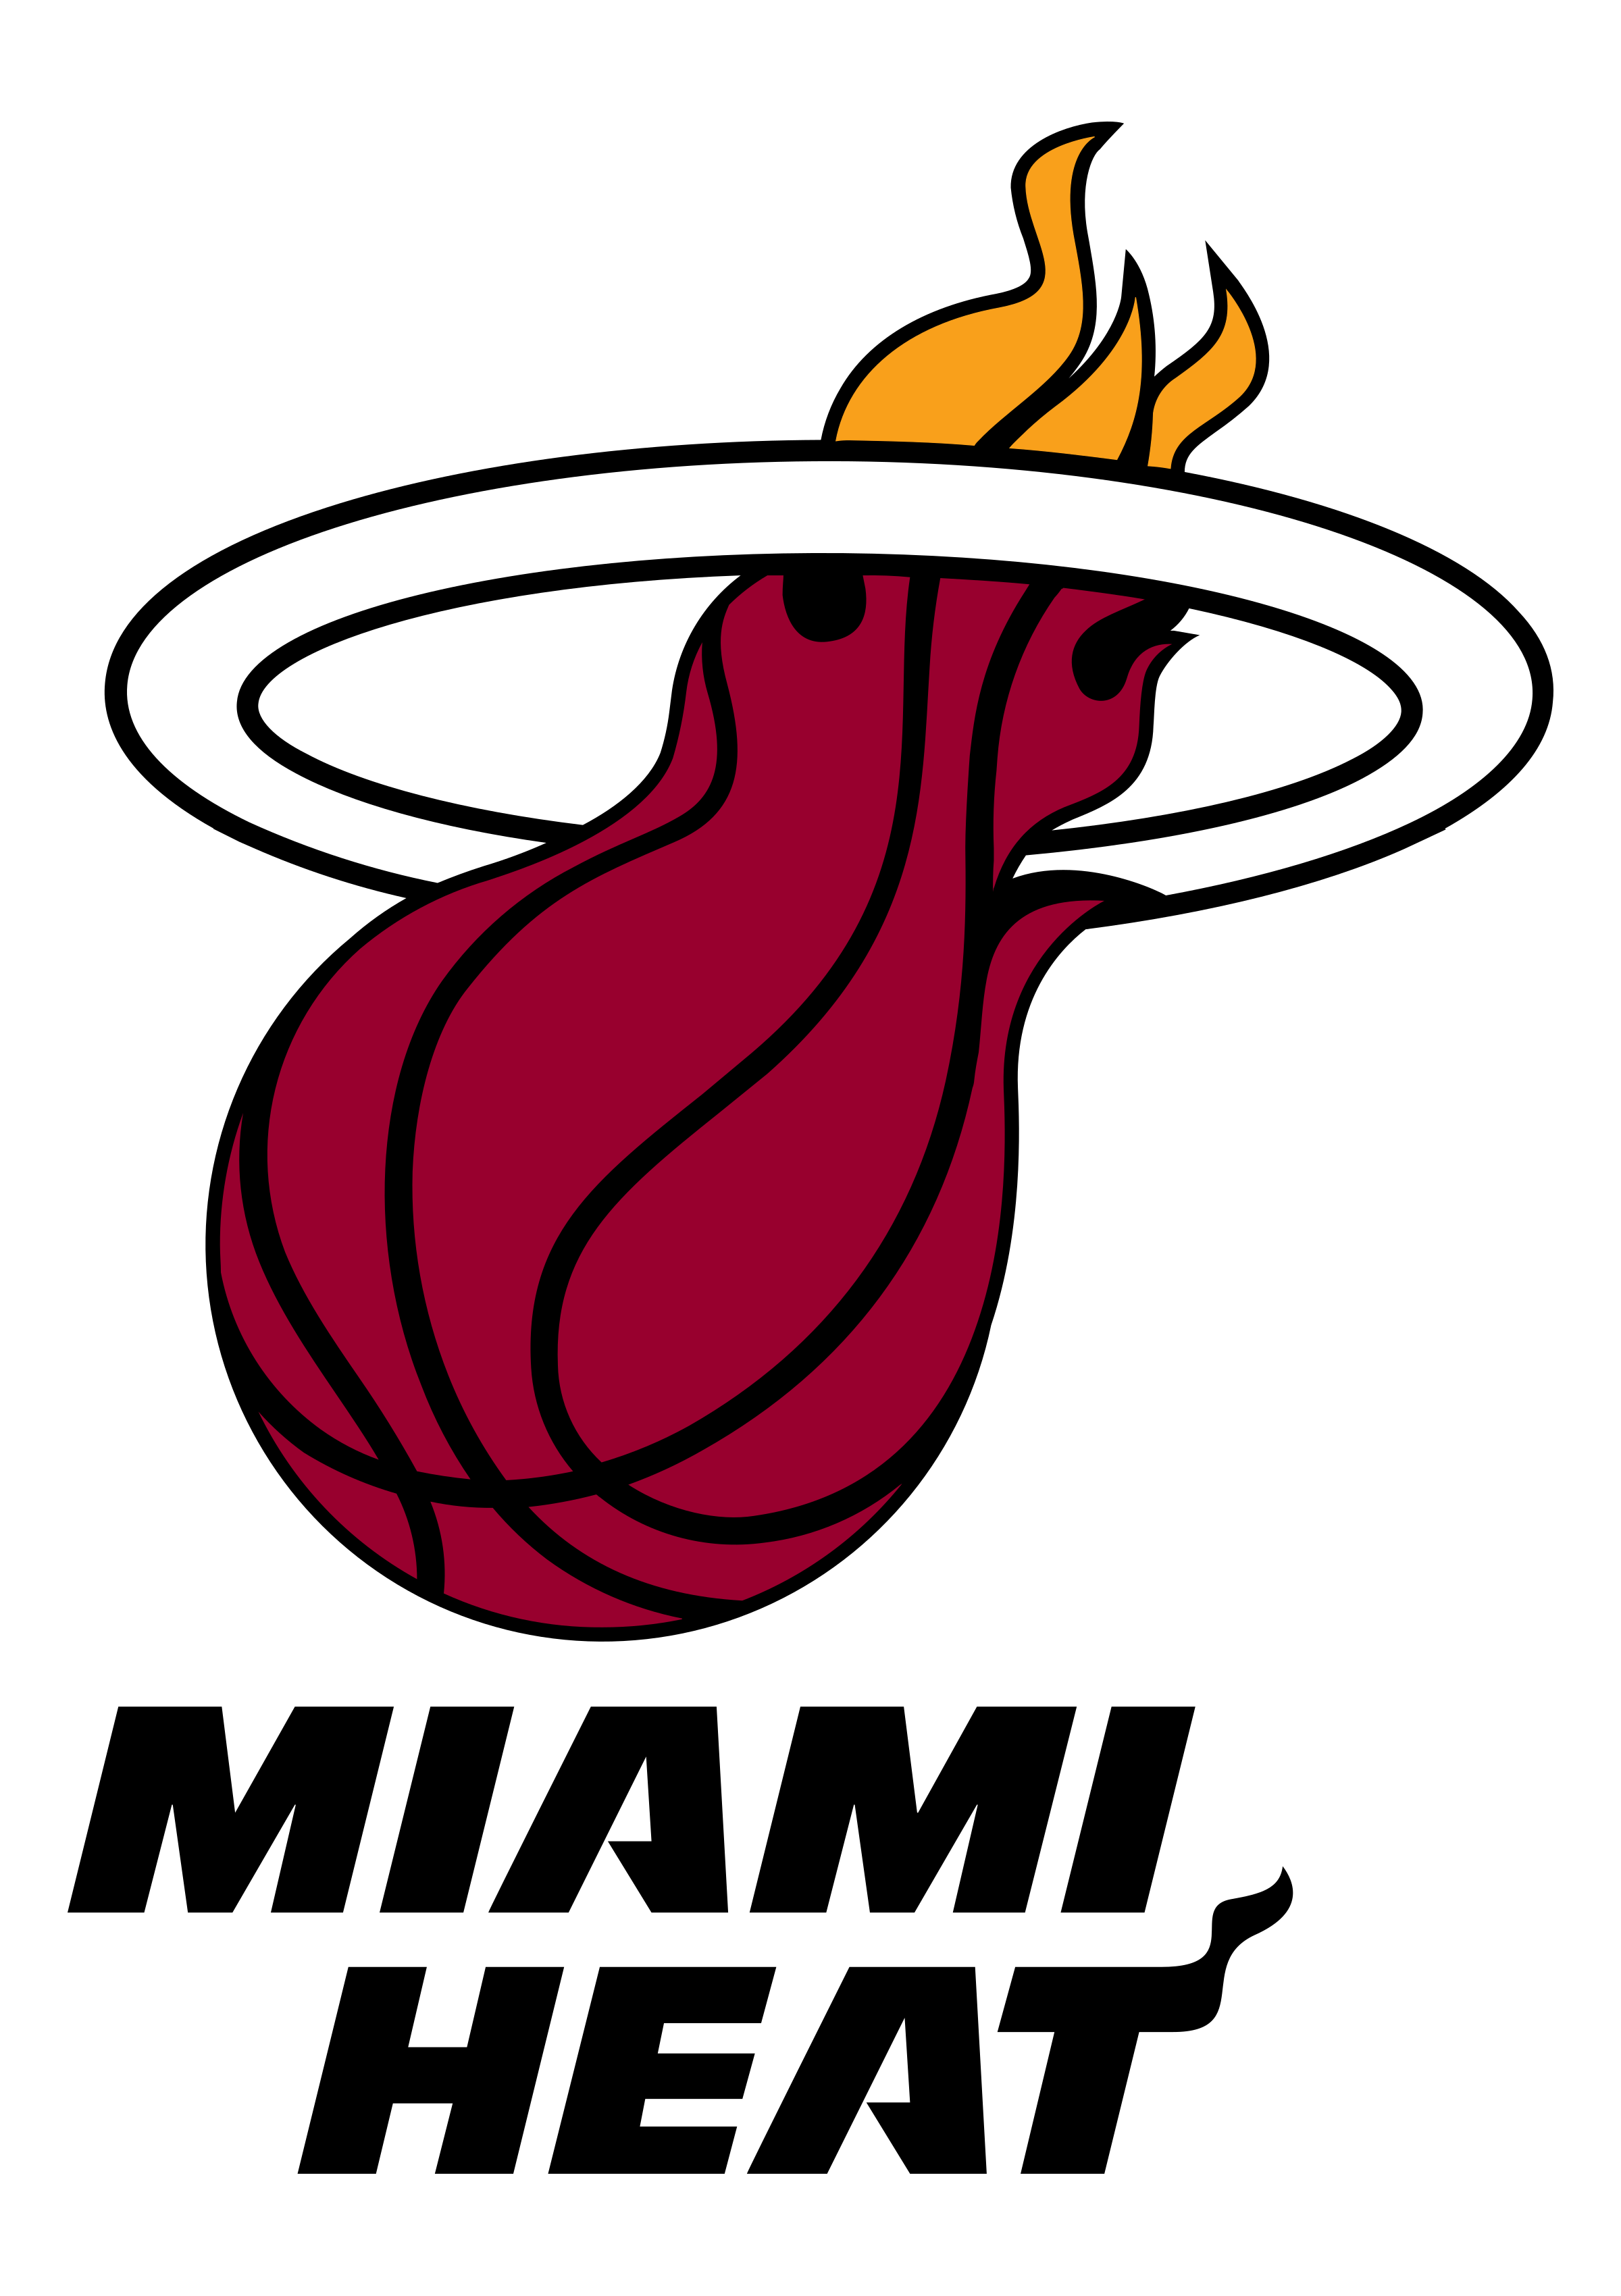 miami heat logo png transparent svg vector freebie supply rh freebiesupply com hat logos heart logos images